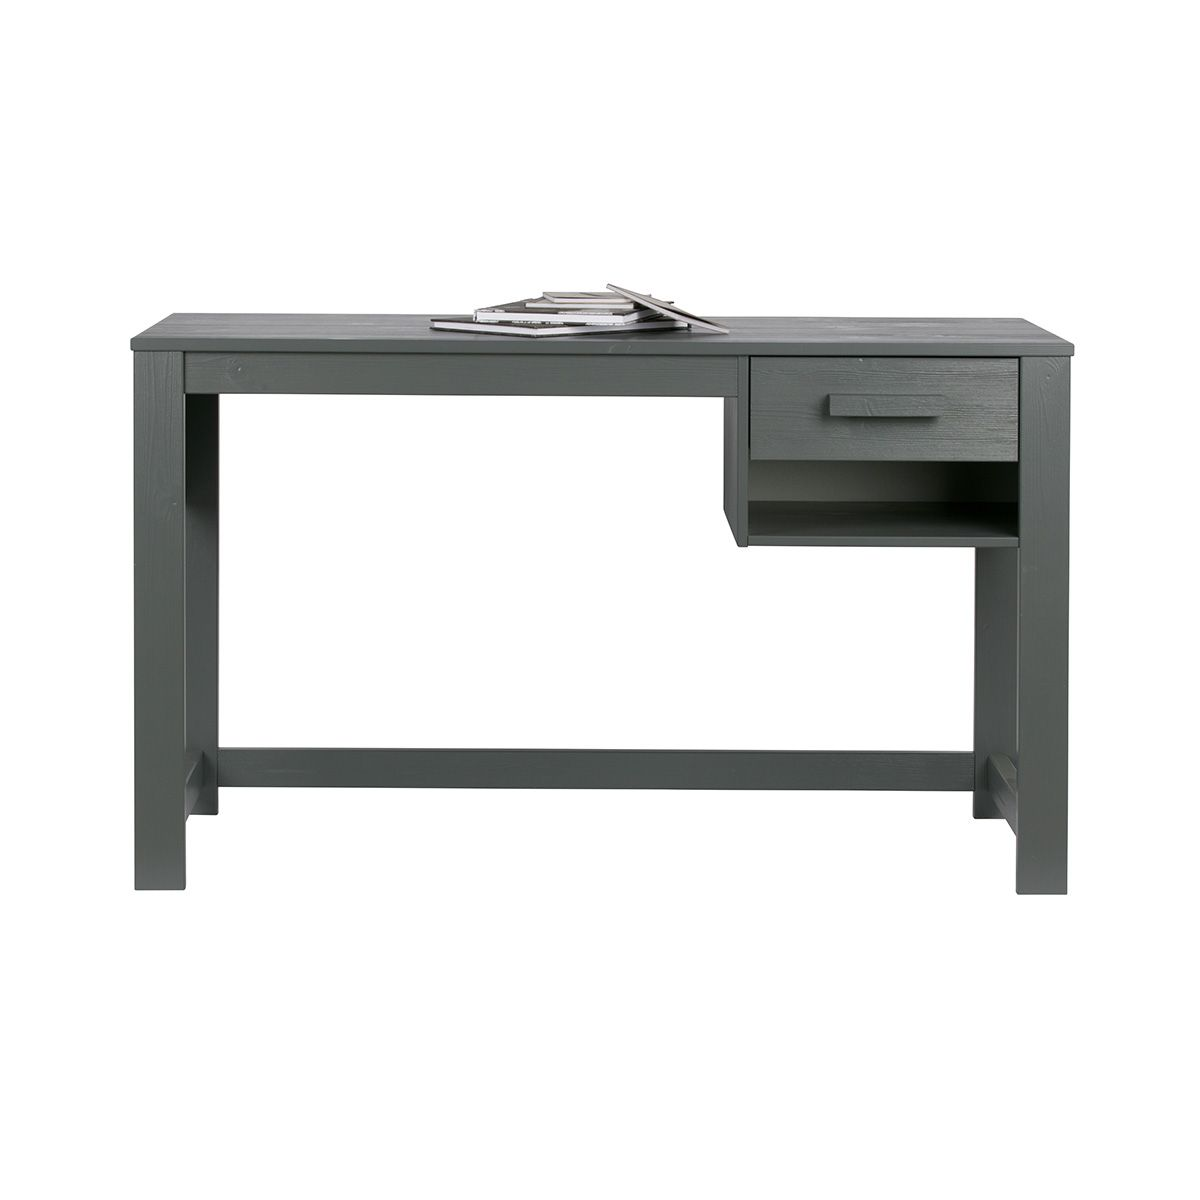 Bureau junior en pin massif brossé FSC Dennis - anthracite